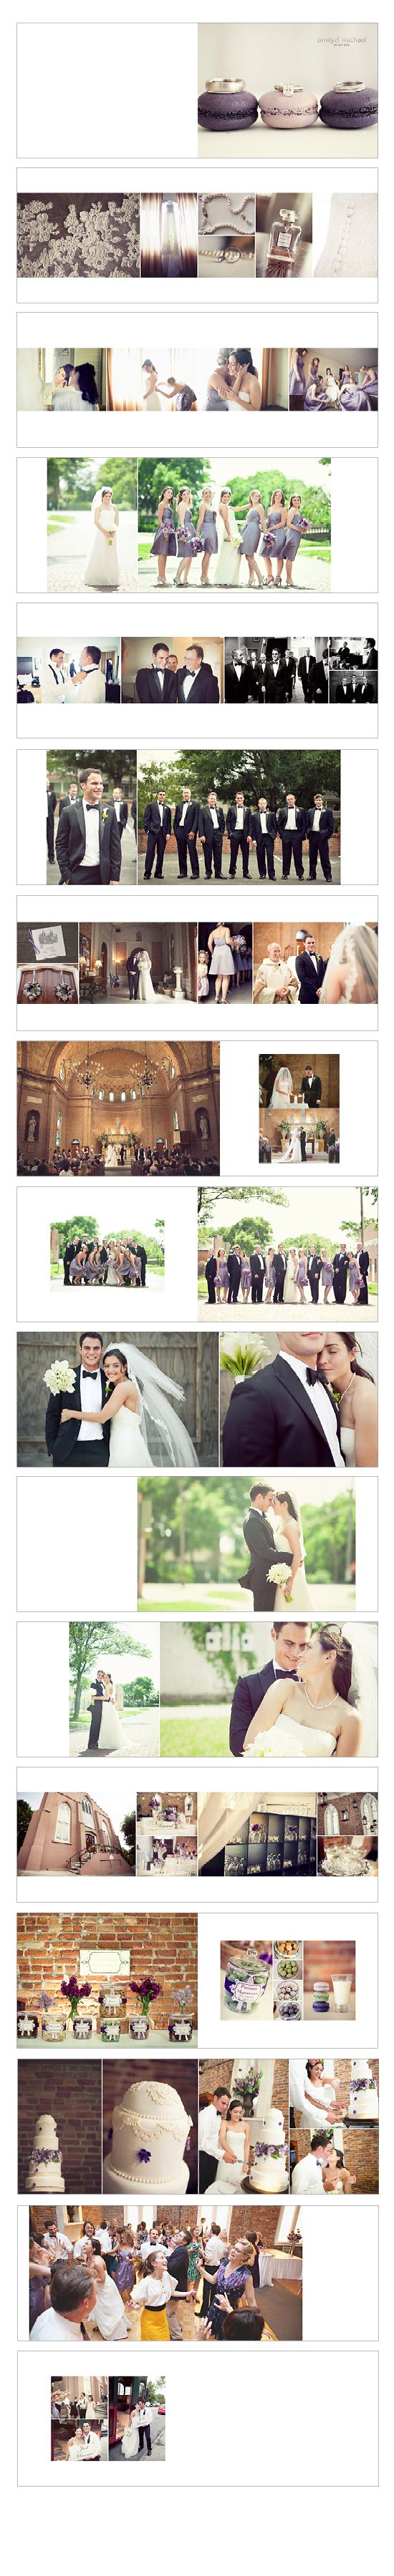 a variety of possible layout ideas, some are a bit busy for our tastes, and not enough white space, but some good ideas of picture combinations to get started with